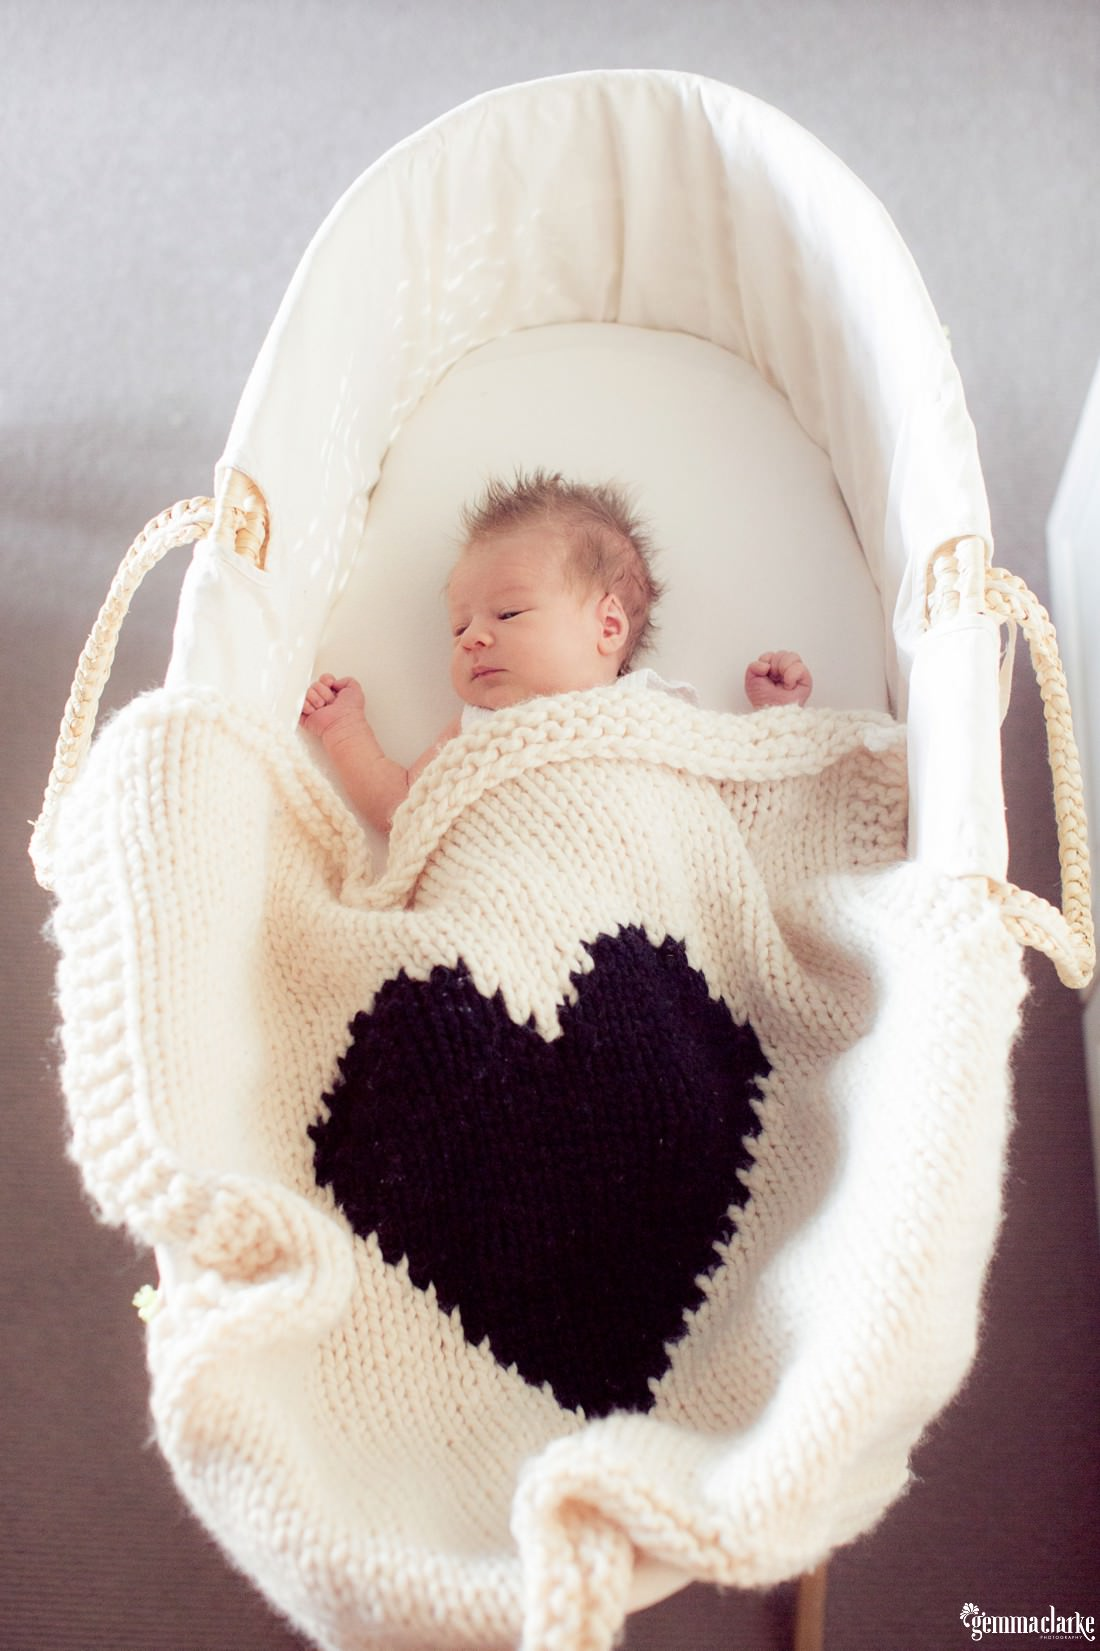 gemmaclarkephotography_lifestyle-newborn-photos-sydney_erin-and-jake_0006